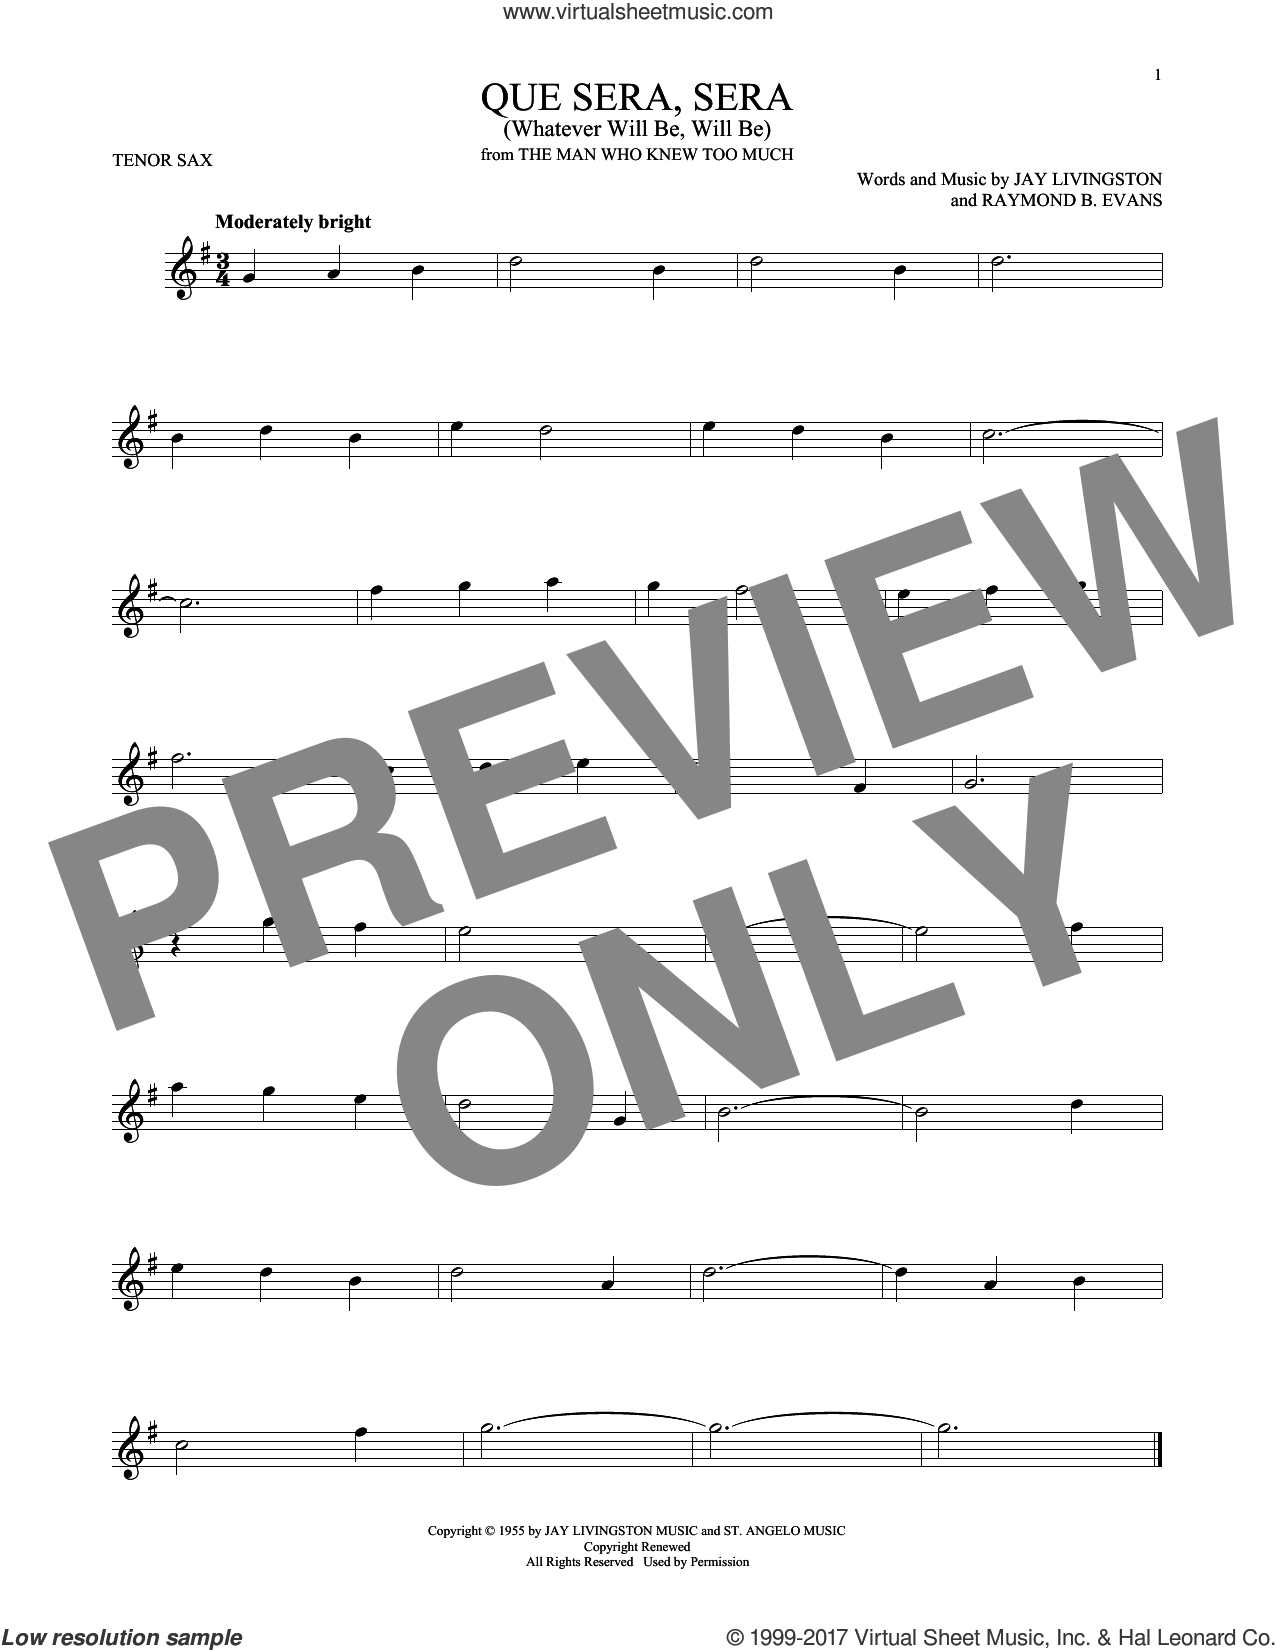 Que Sera, Sera (Whatever Will Be, Will Be) sheet music for tenor saxophone solo by Doris Day, Jay Livingston and Raymond B. Evans, intermediate skill level